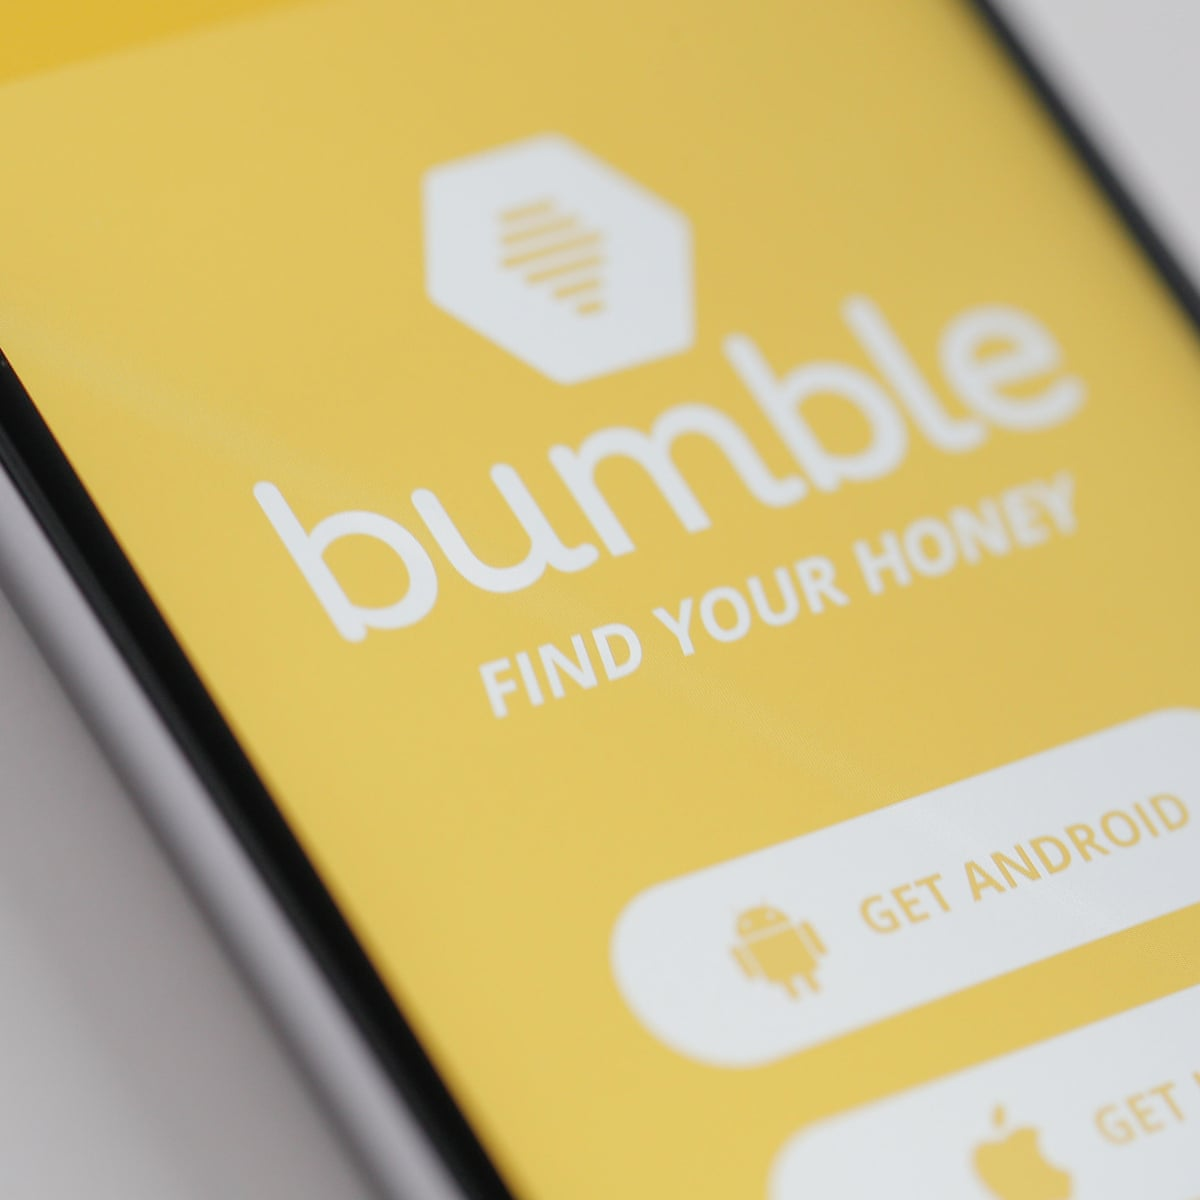 Bumble dating app closes to give 'burnt-out' staff a week's break